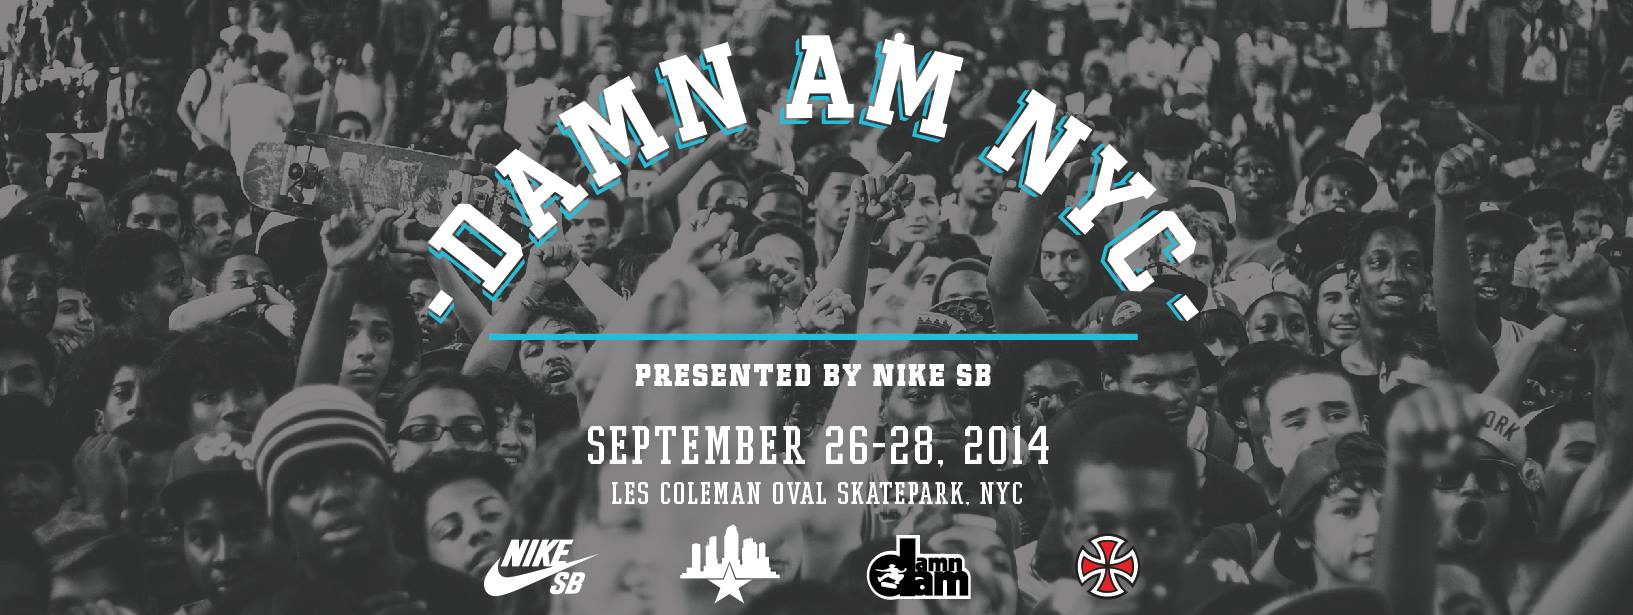 DAMN AM NYC Contest This Weekend (2014)